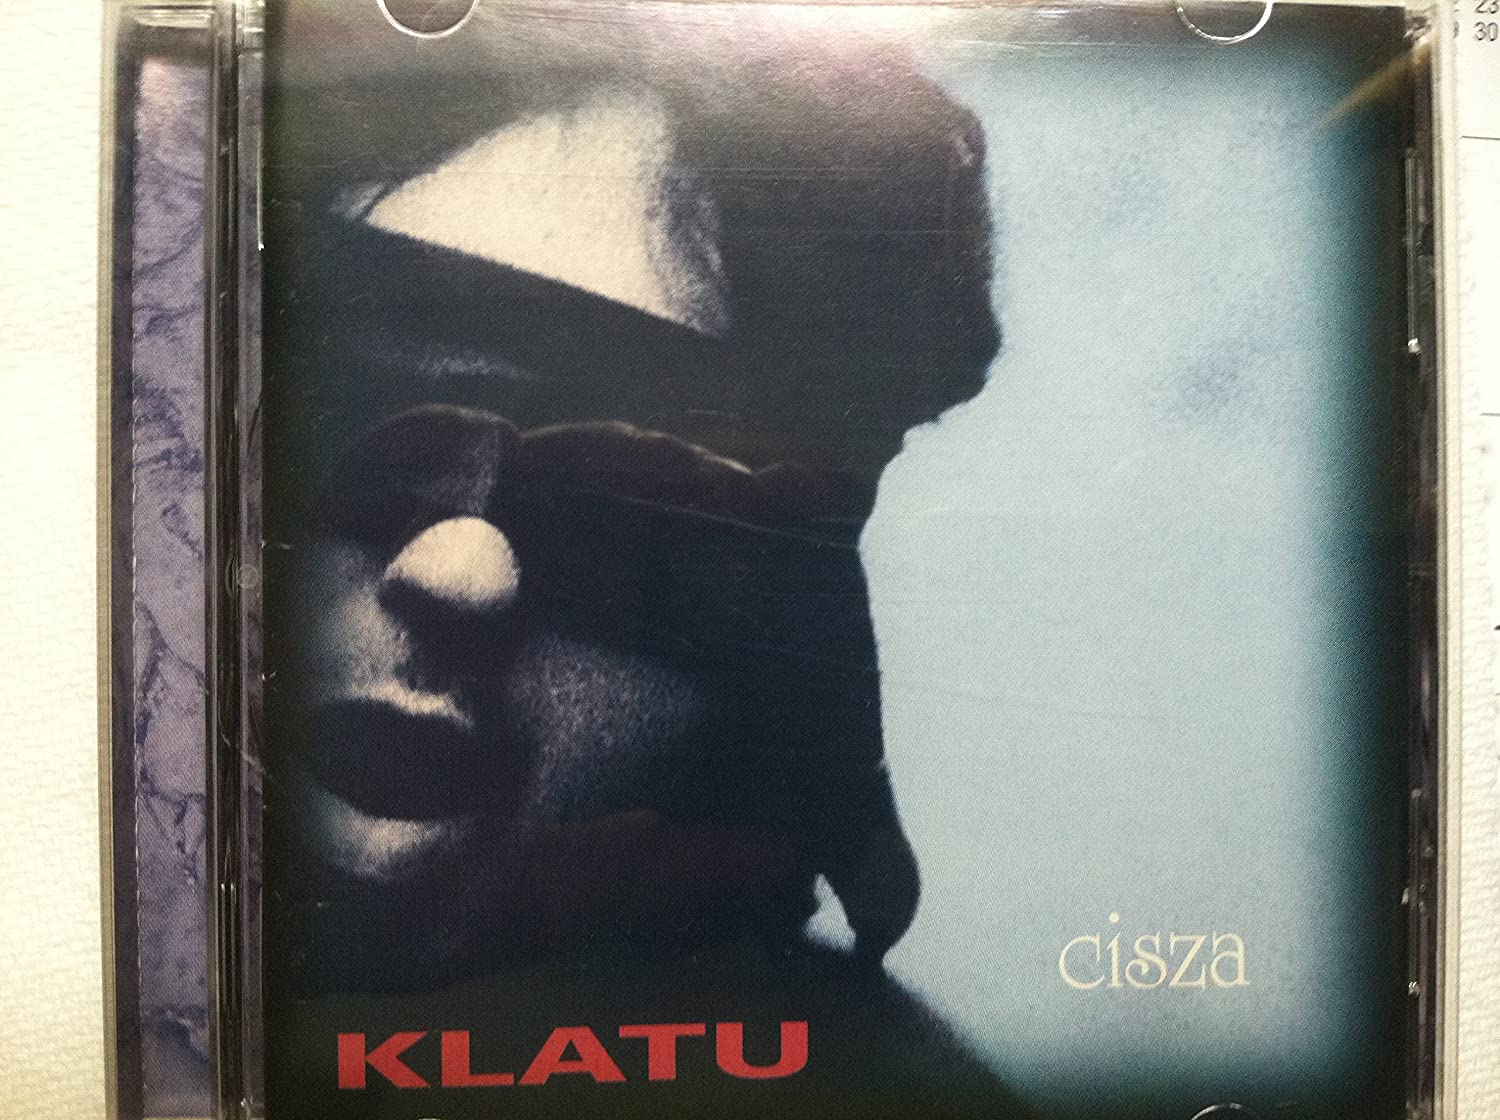 Klatu - Cisza - Amazon com Music